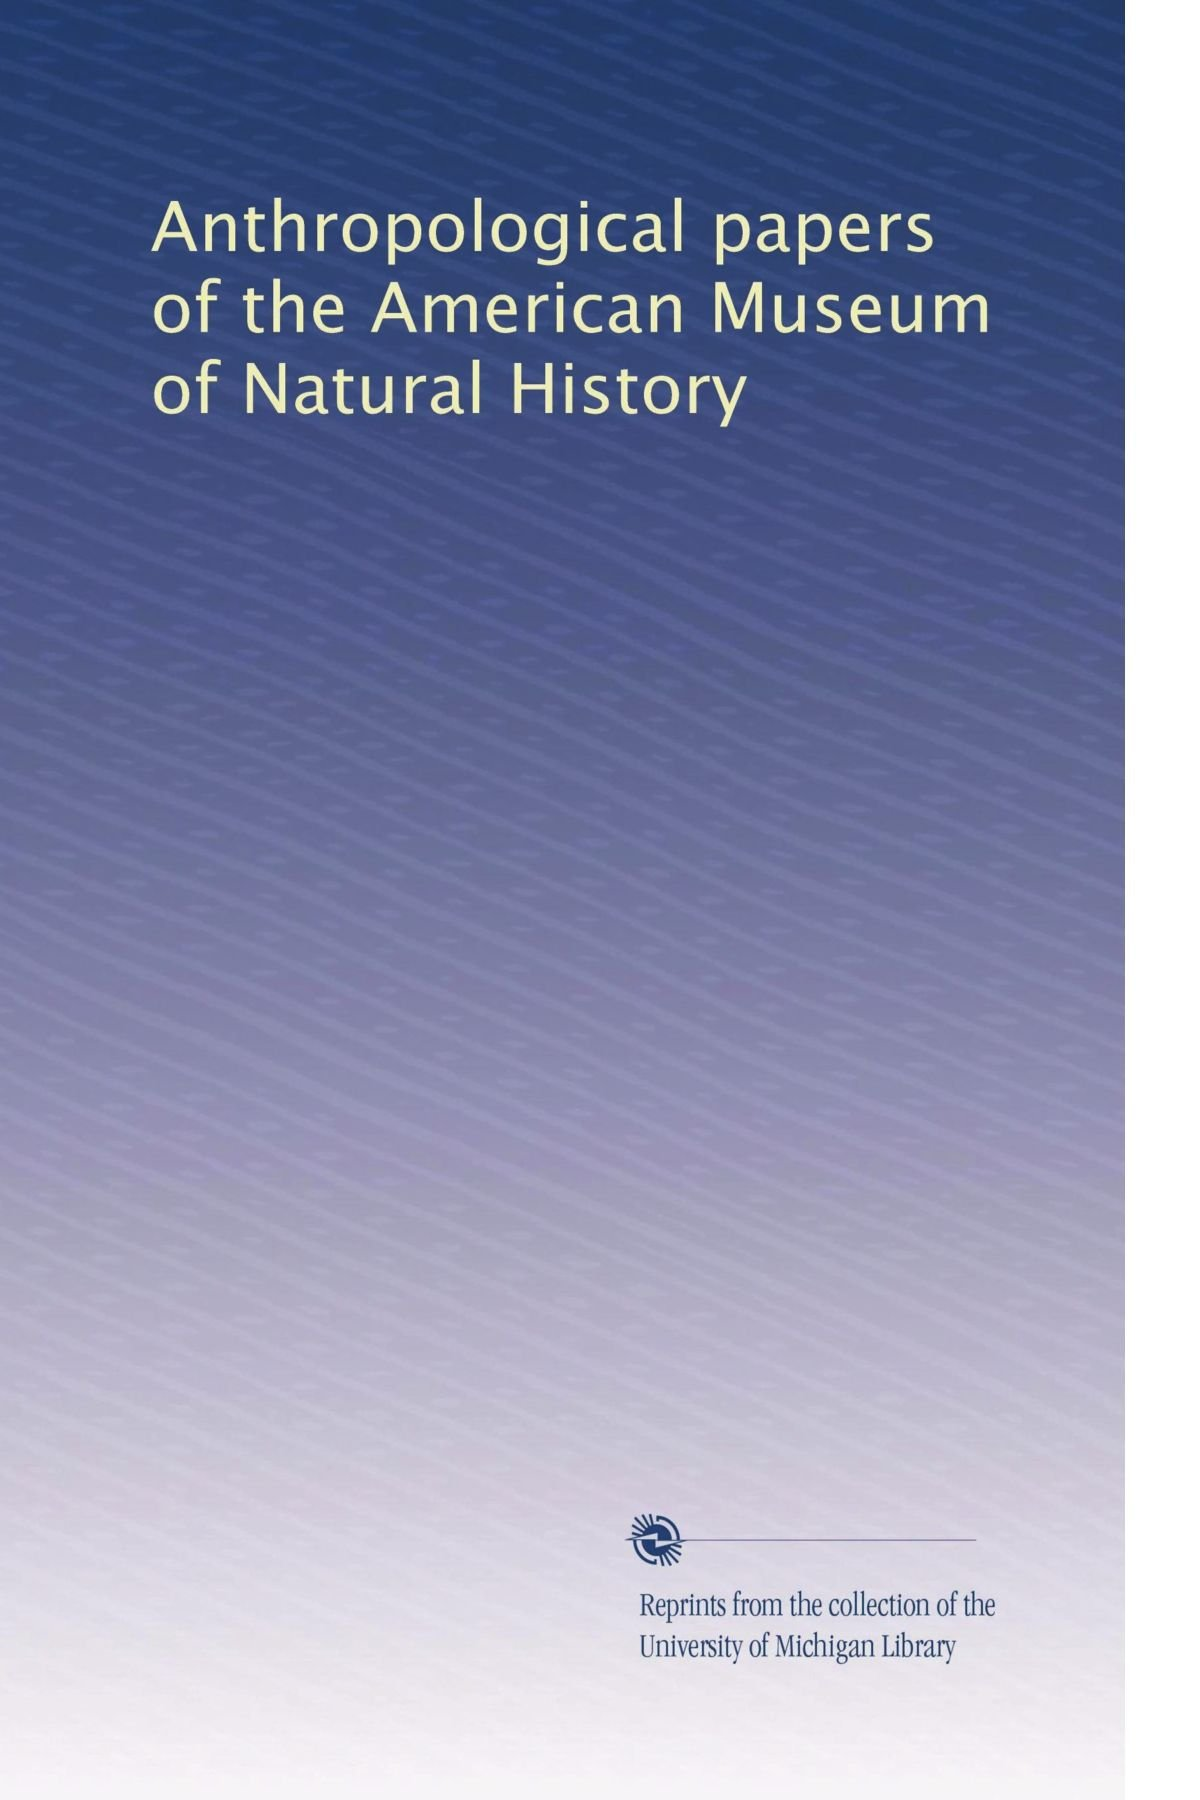 Download Anthropological papers of the American Museum of Natural History ebook